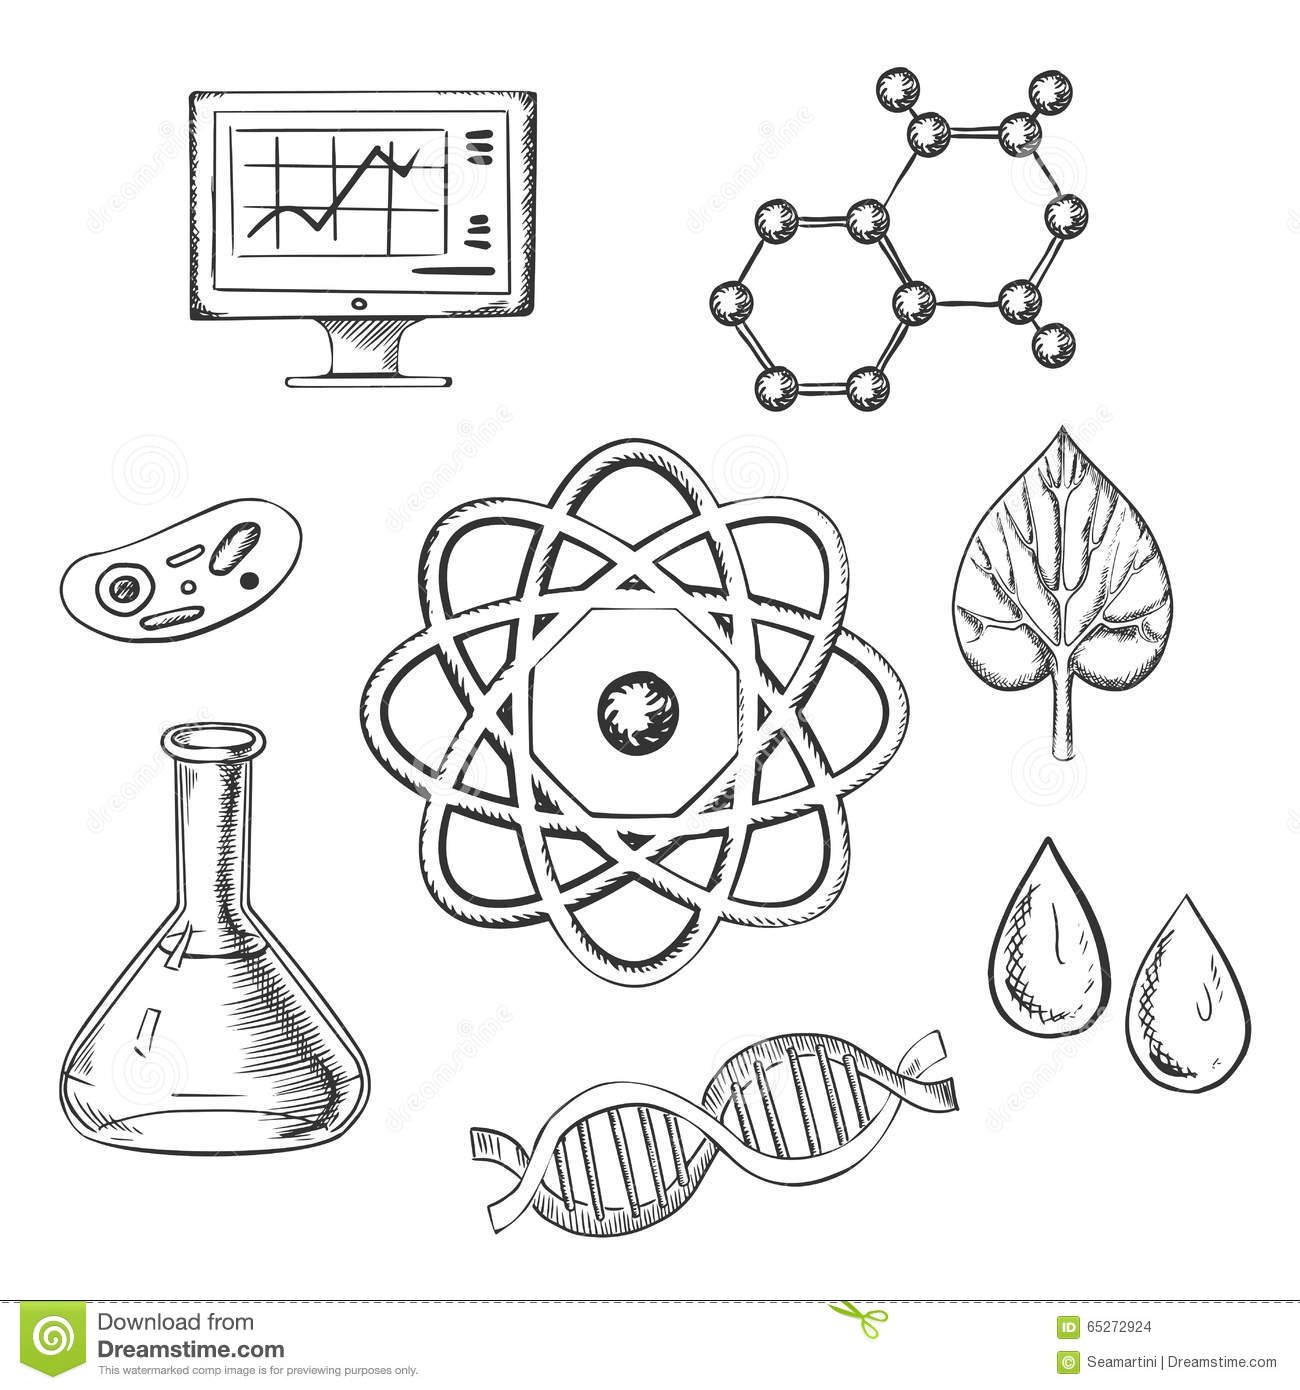 atoms and molecules coloring pages - photo#14